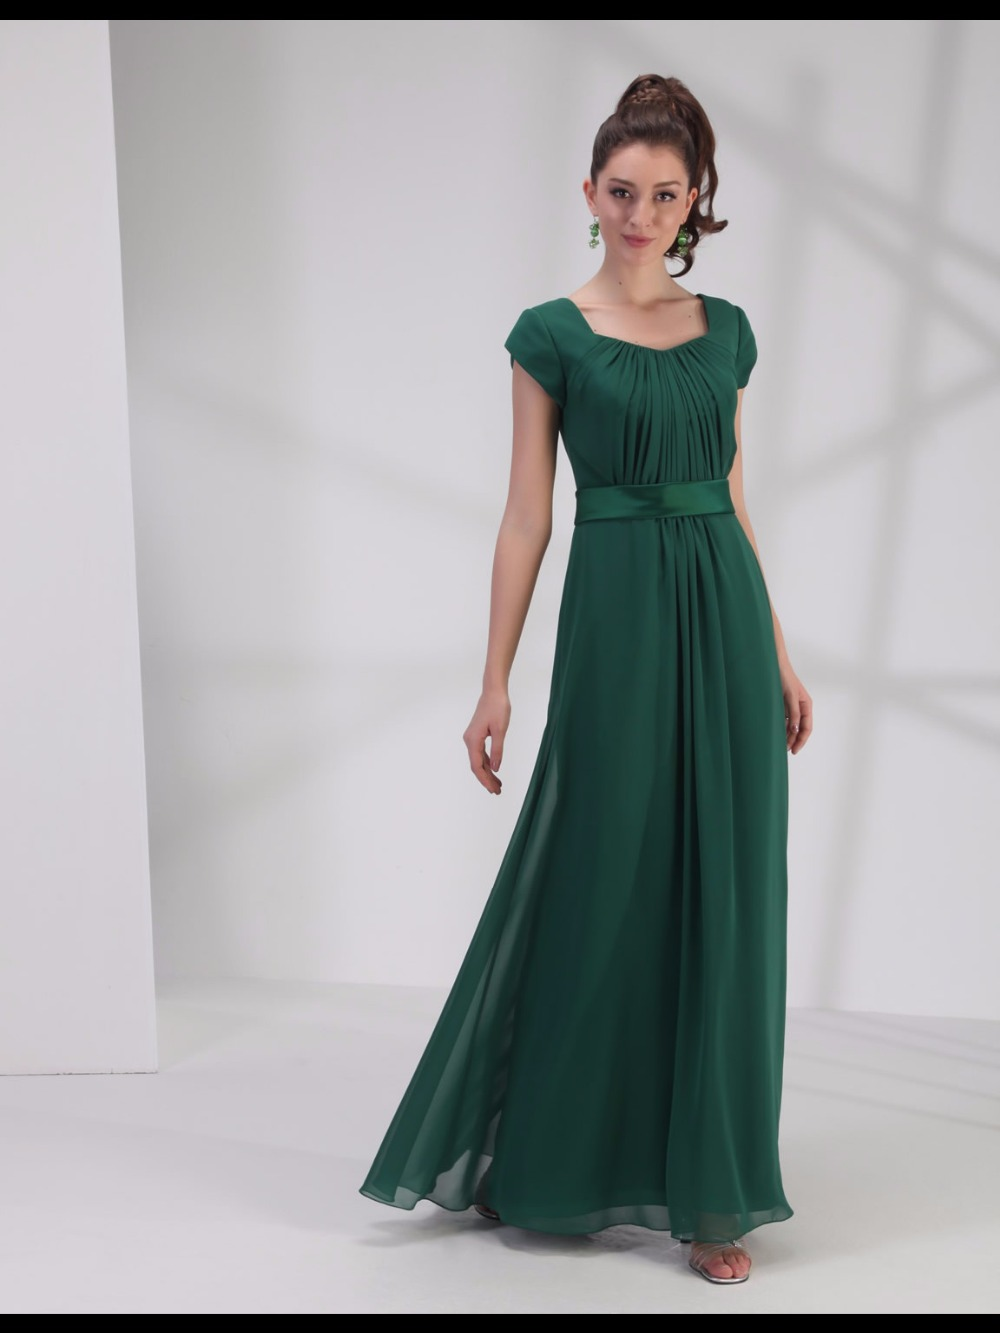 Green Long Modest   Bridesmaid     Dresses   With Cap Sleeves Sweetheart A-line Floor Pleats Belt Chiffon Maids of Honor Party Gowns